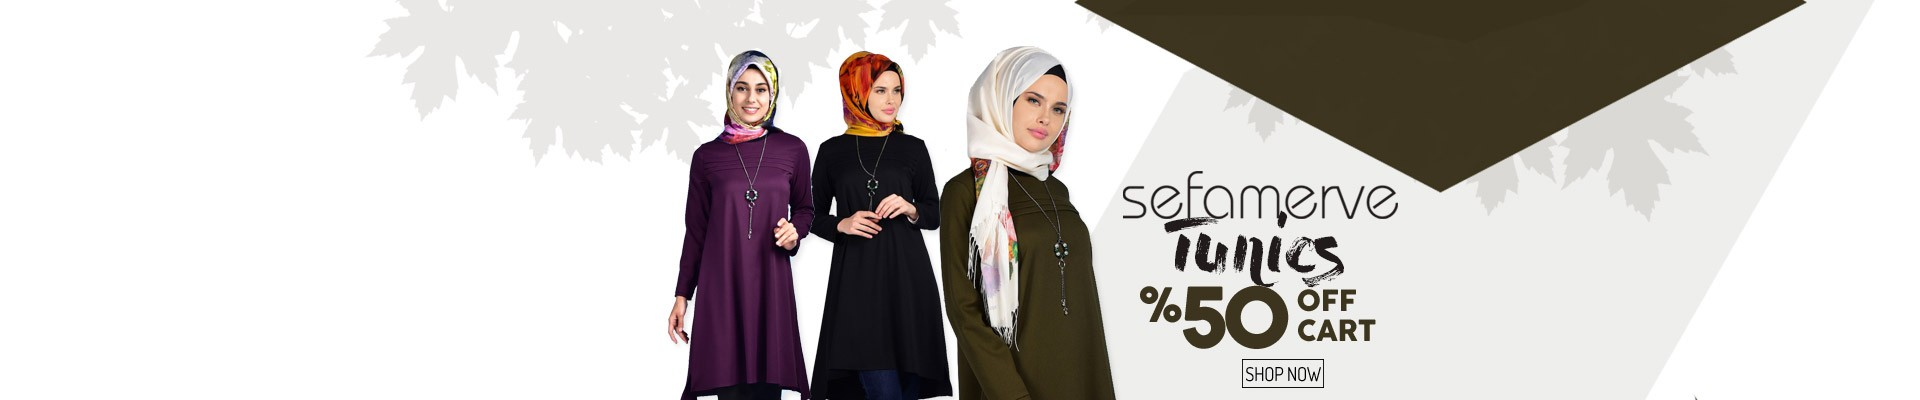 On Sefamerve Tunics %50 Discount of Cart